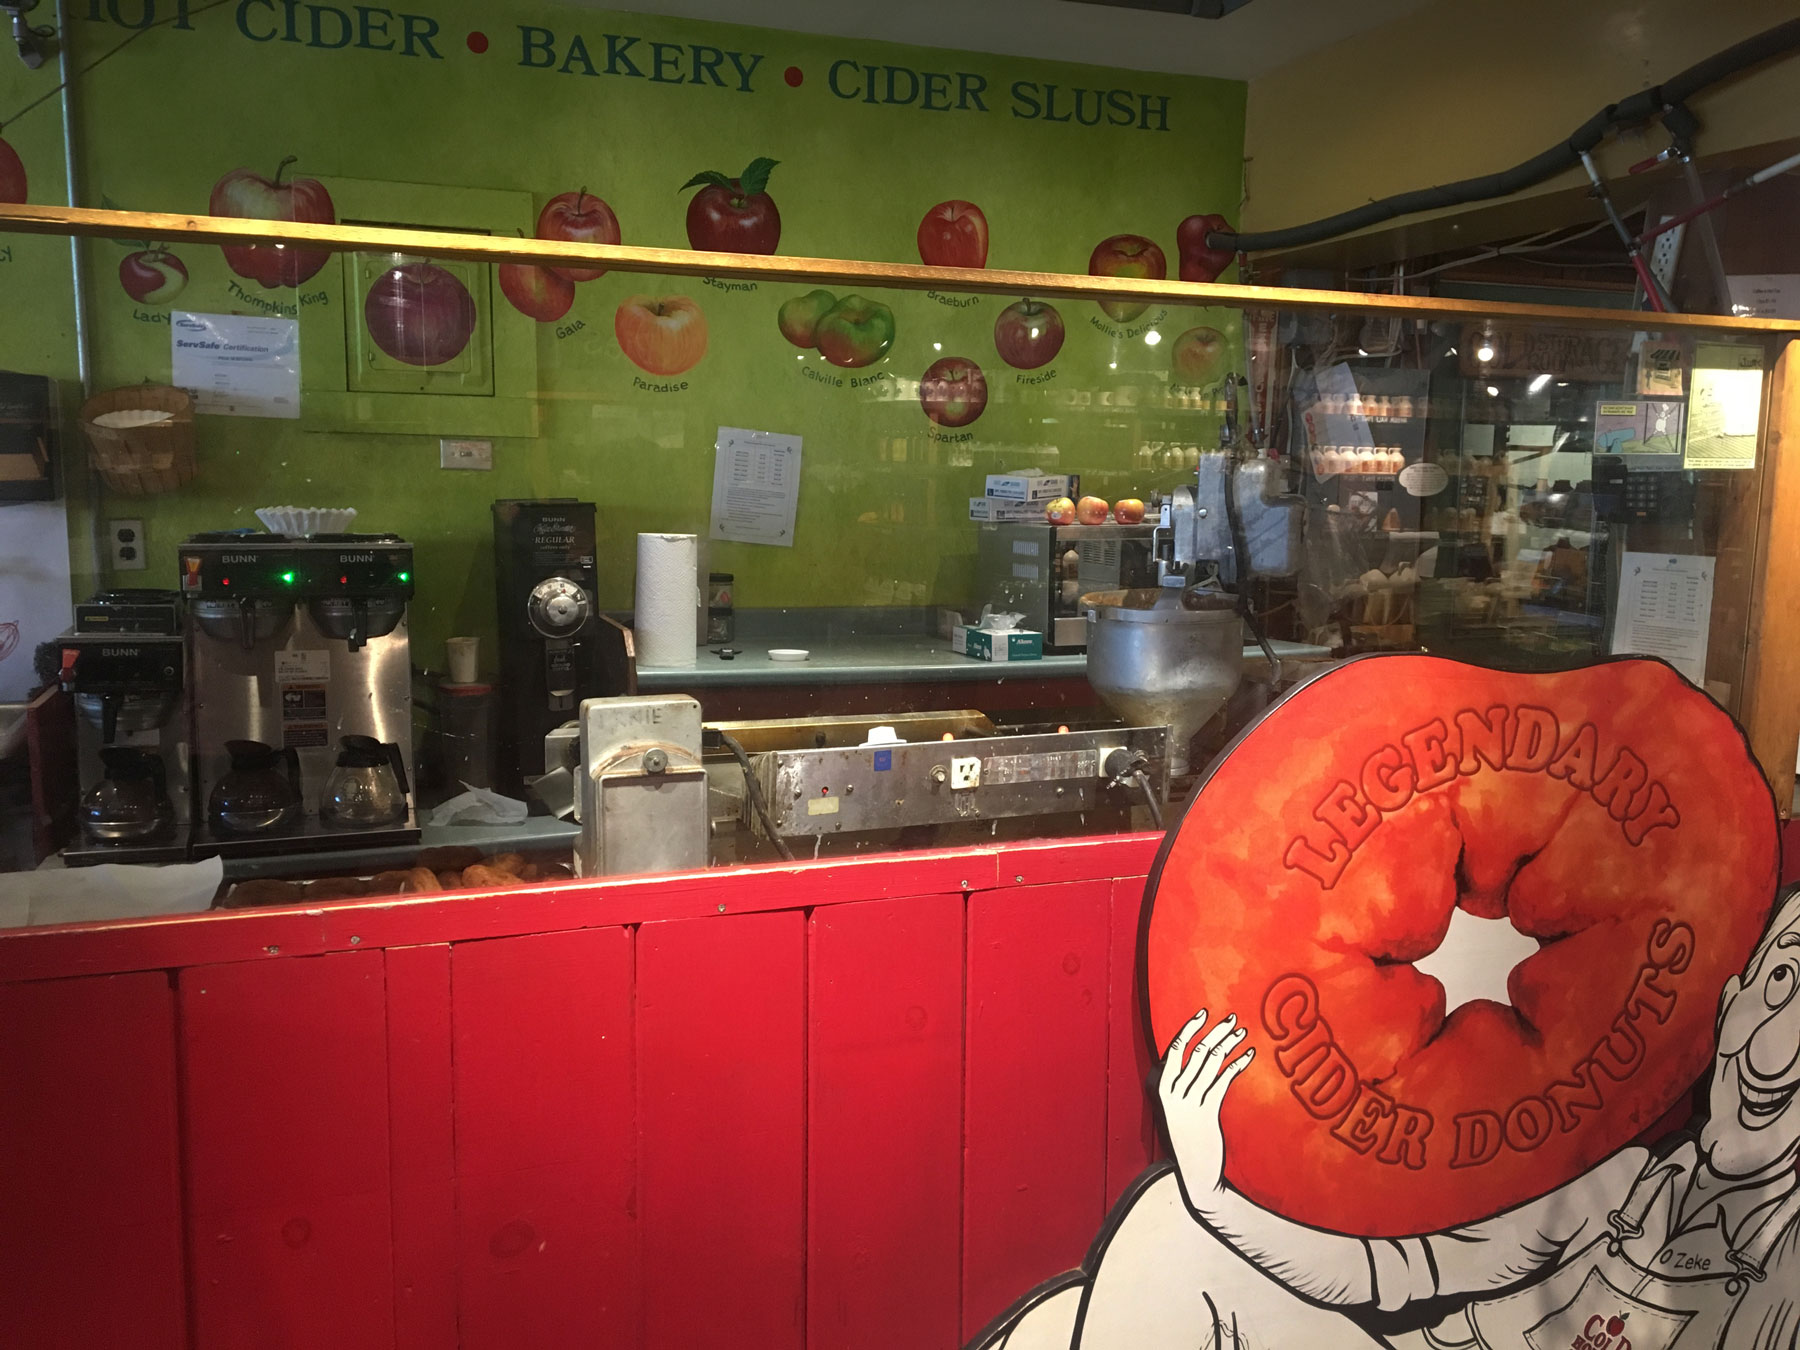 Interior of Cider Hollow Cider Mill with legendary cider donut signage